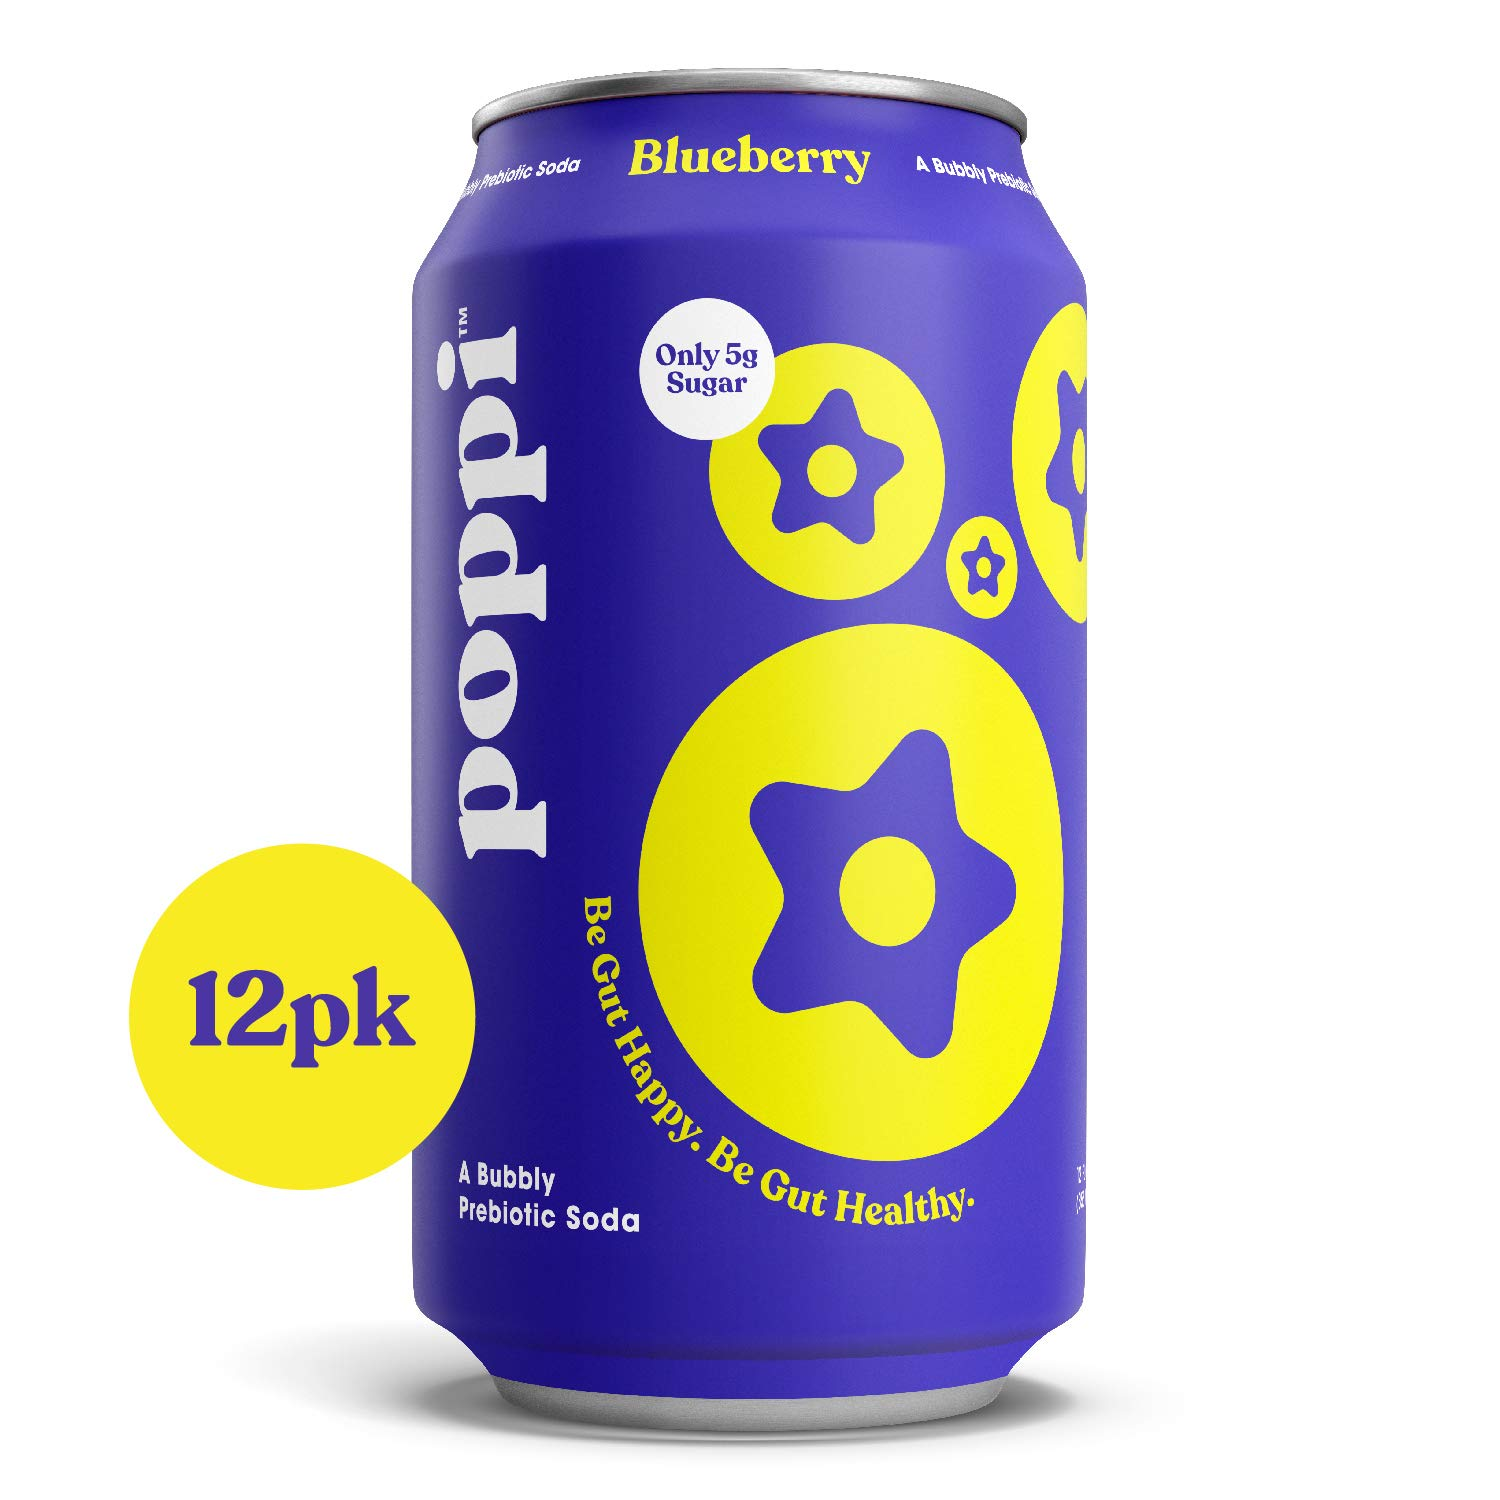 poppi (12 Pack) Prebiotic Soda Infused with Apple Cider Vinegar, Blueberry, 20 calories, 5g Sugar, 12 fl oz Cans